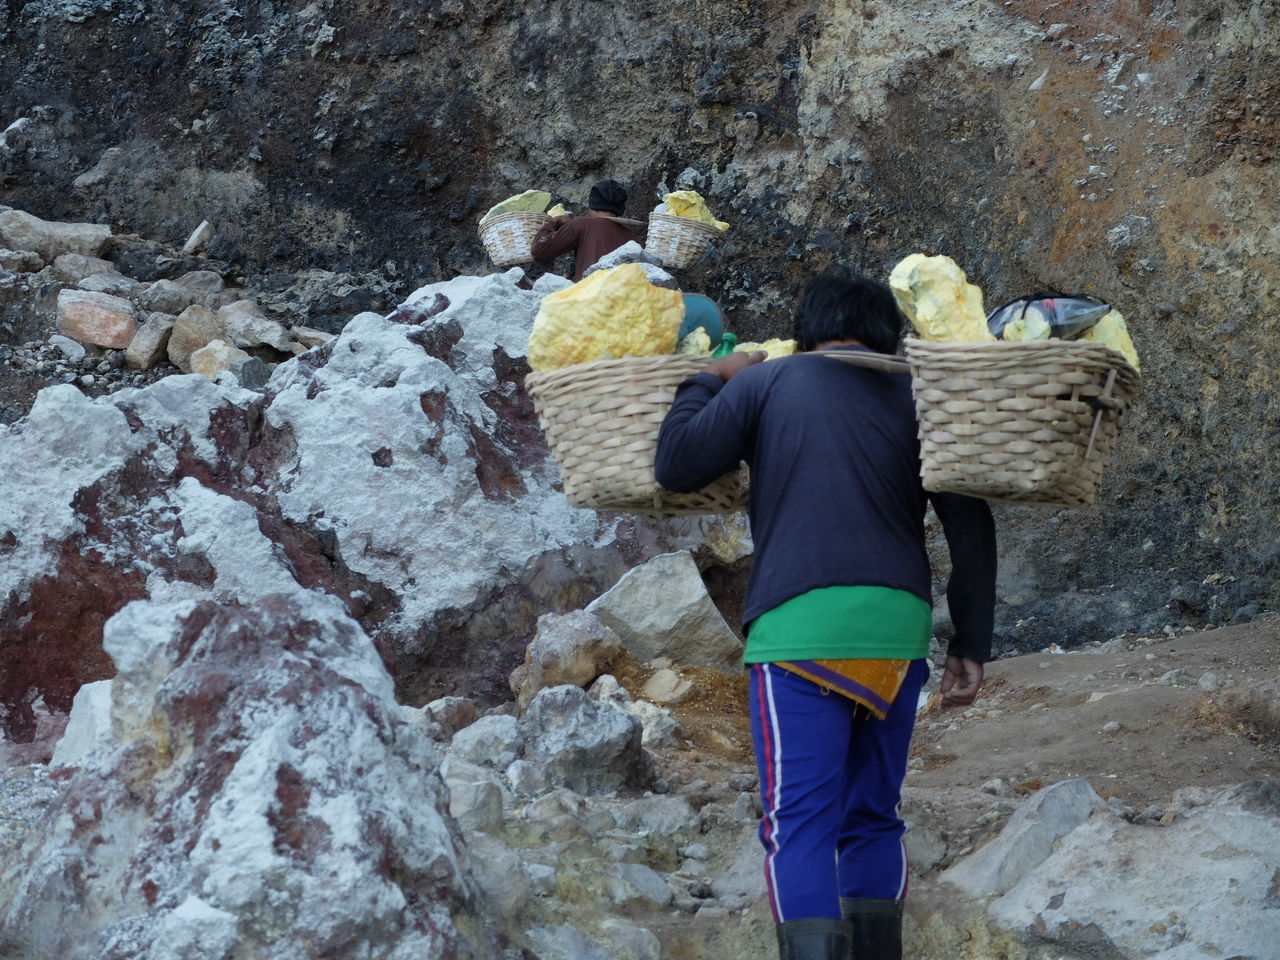 Indonesian workers carrying suffer in Ijen Crater, Indonesia. Adult Beauty In Nature Day Farmer Hard Work Ijen Ijen Crater INDONESIA Java Kawah Ijen Lifestyles Men Nature Occupation One Person Outdoors People Real People Rear View Roadtrip Suffer Trek Trekking Volcano Working